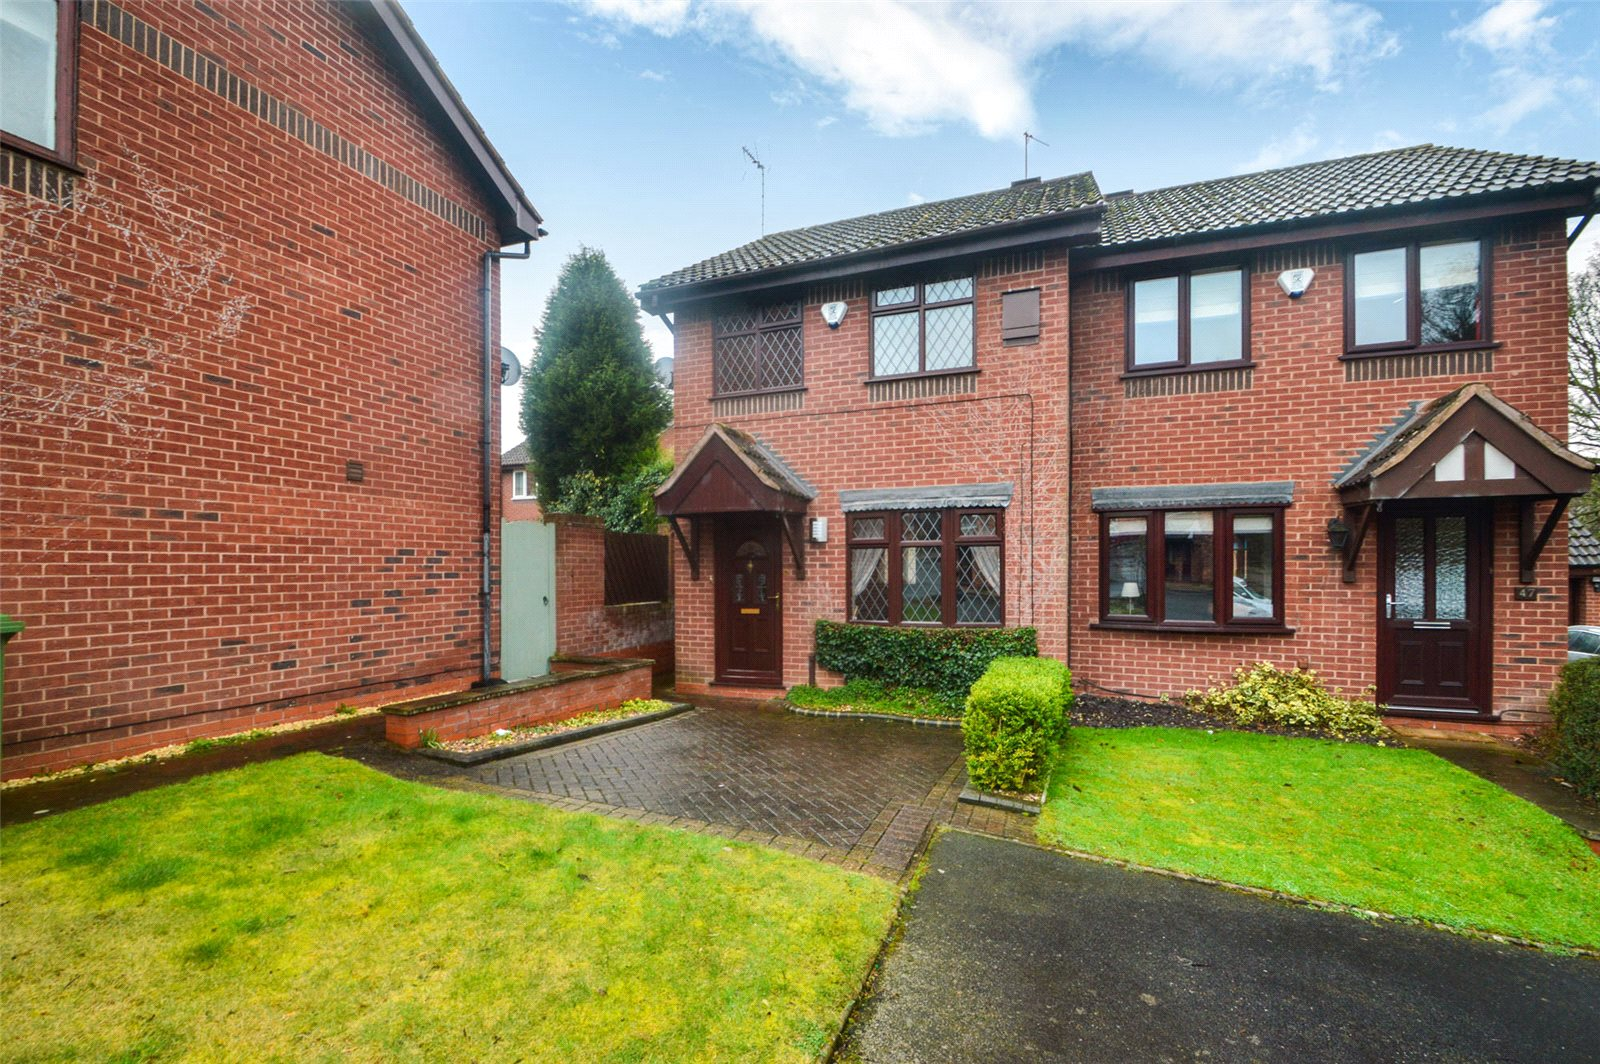 2 Bedrooms Semi Detached House for sale in 45 Whinchat Grove, Kidderminster, DY10